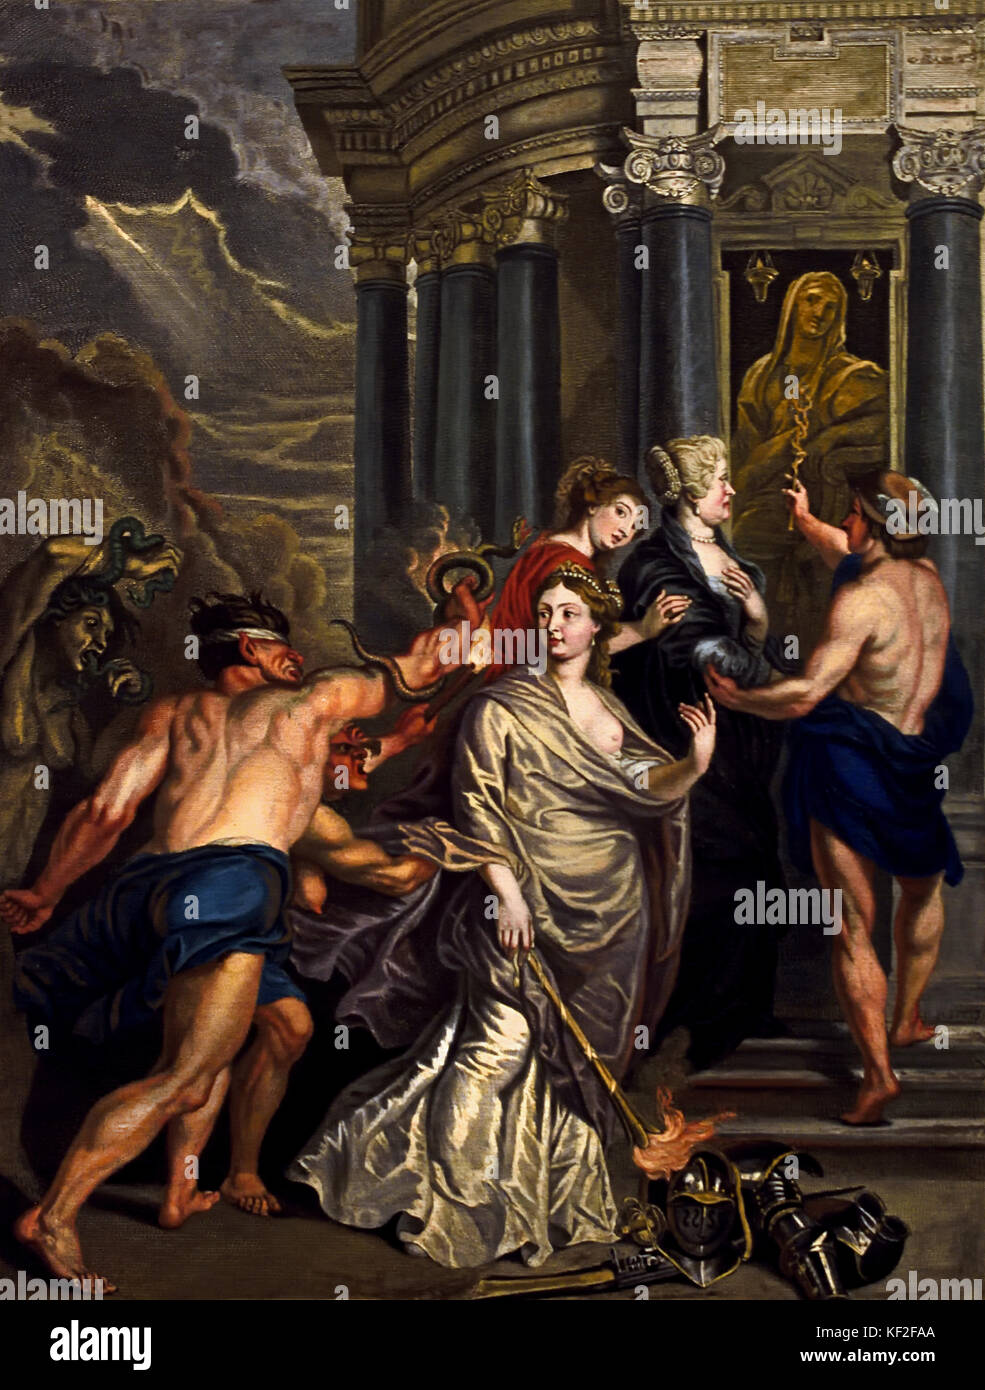 The Queen Opts for Security - The Marie de' Medici Cycle 1622-1624  by Peter Paul Rubens commissioned by Queen - Stock Image